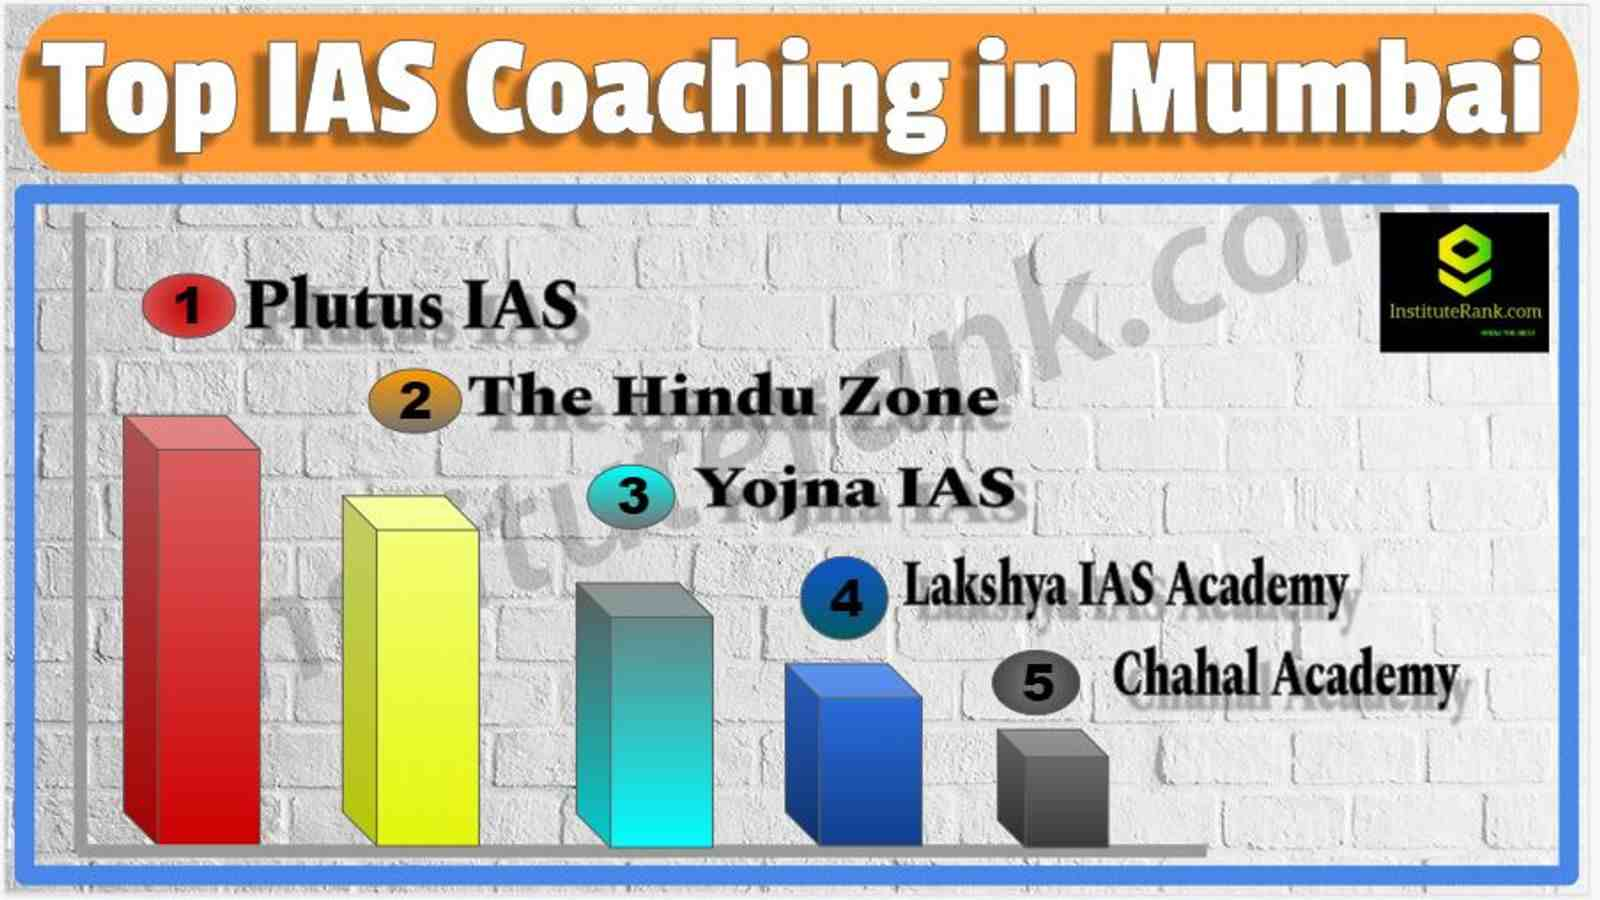 Best IAS Coaching Classes in Mumbai